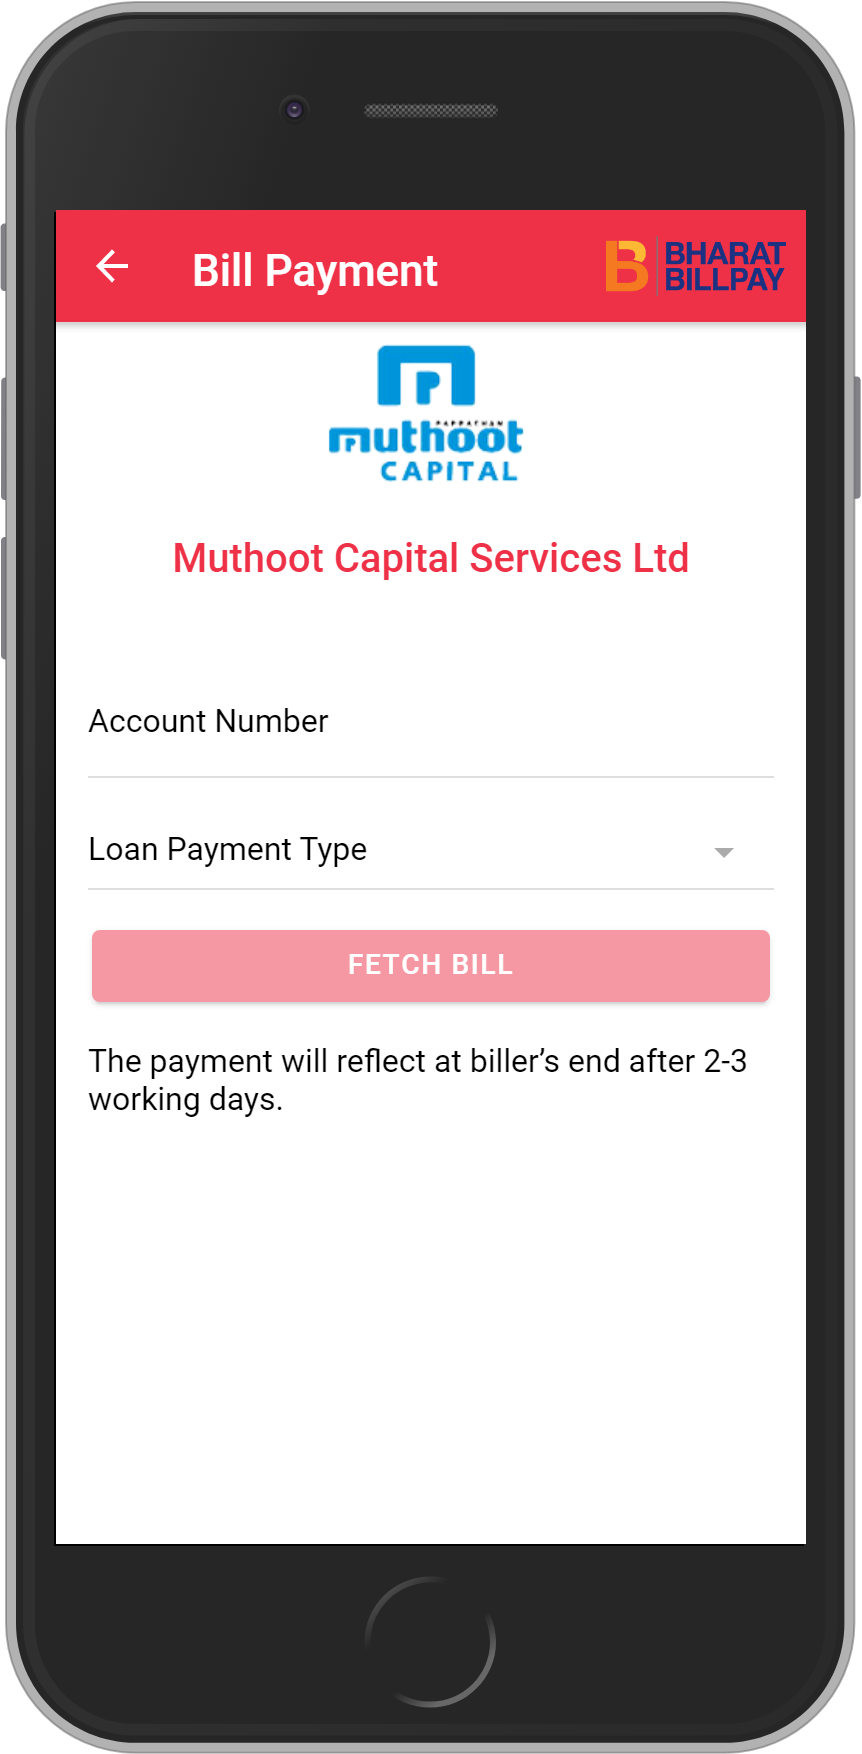 Get UNLIMITED <b>0.1%</b> CASHBACK on Muthoot Capital Services Ltd Loan Payment.